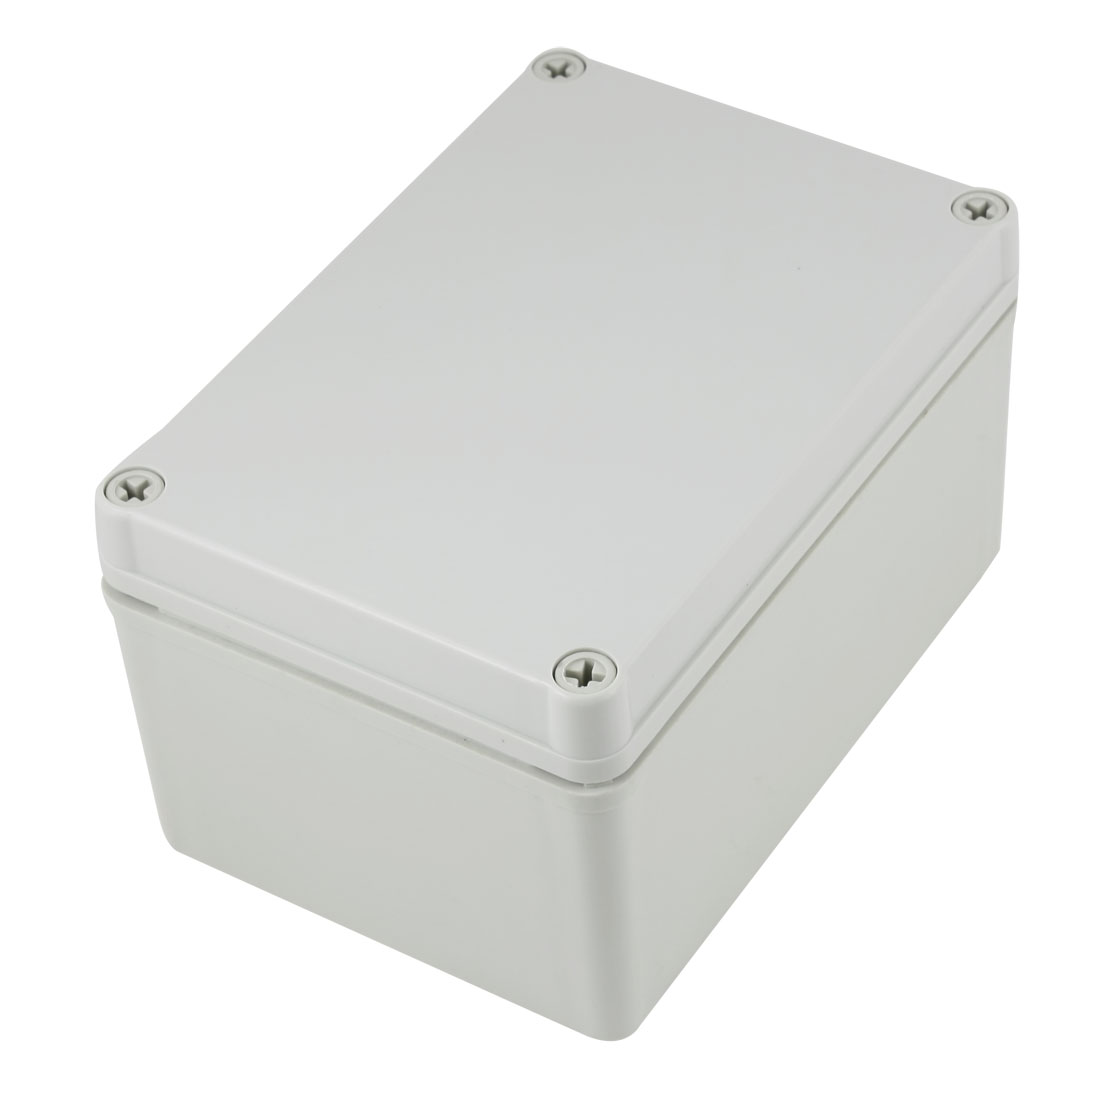 170mm x 120mm x 100mm Dustproof IP65 Plastic Electric Junction Enclose Box Power Protector Case